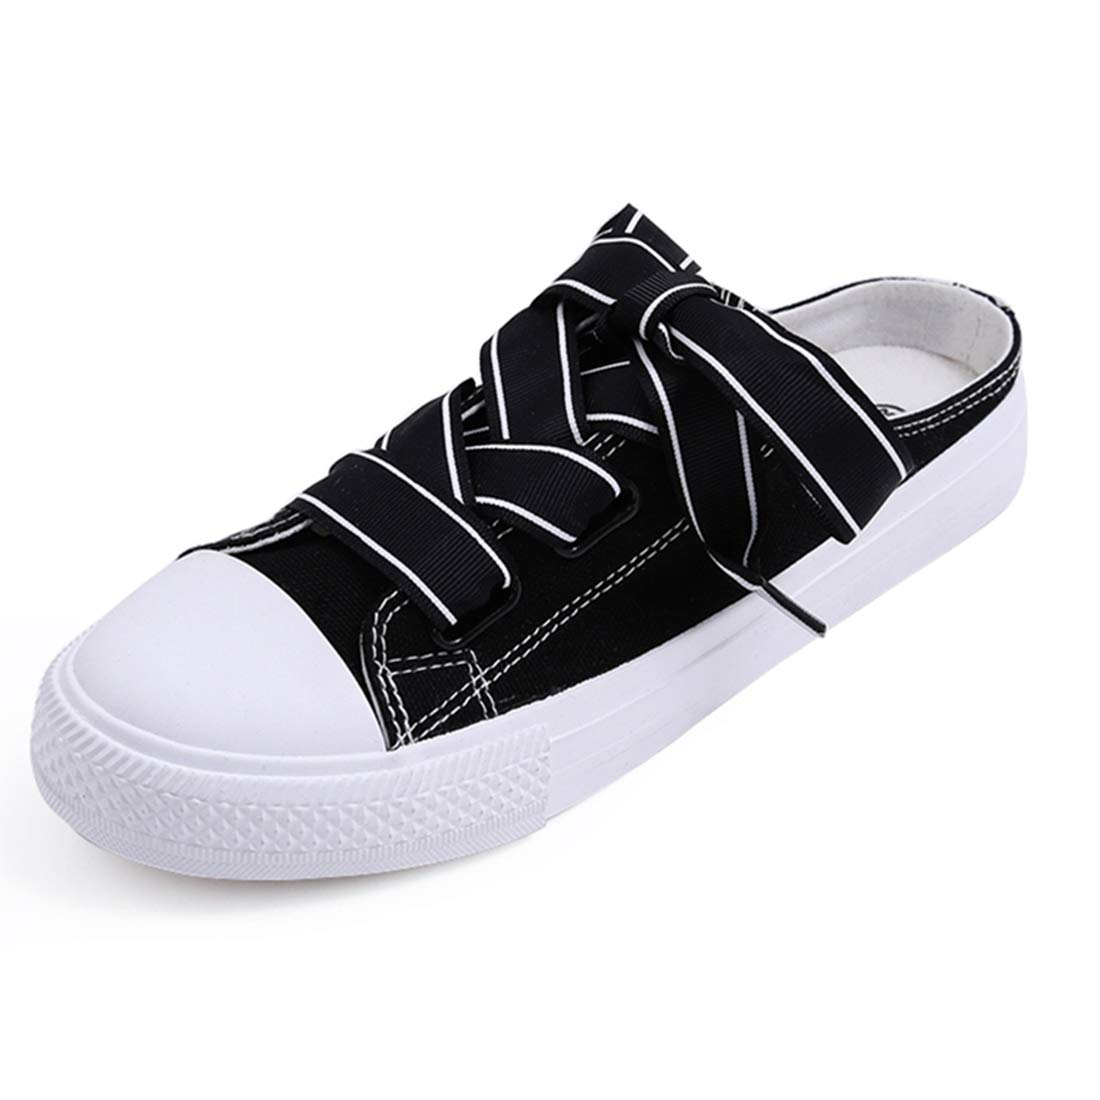 8105 Cool Soft Sneakers PU Injection Shoes Footwear for 25-27cm Feet